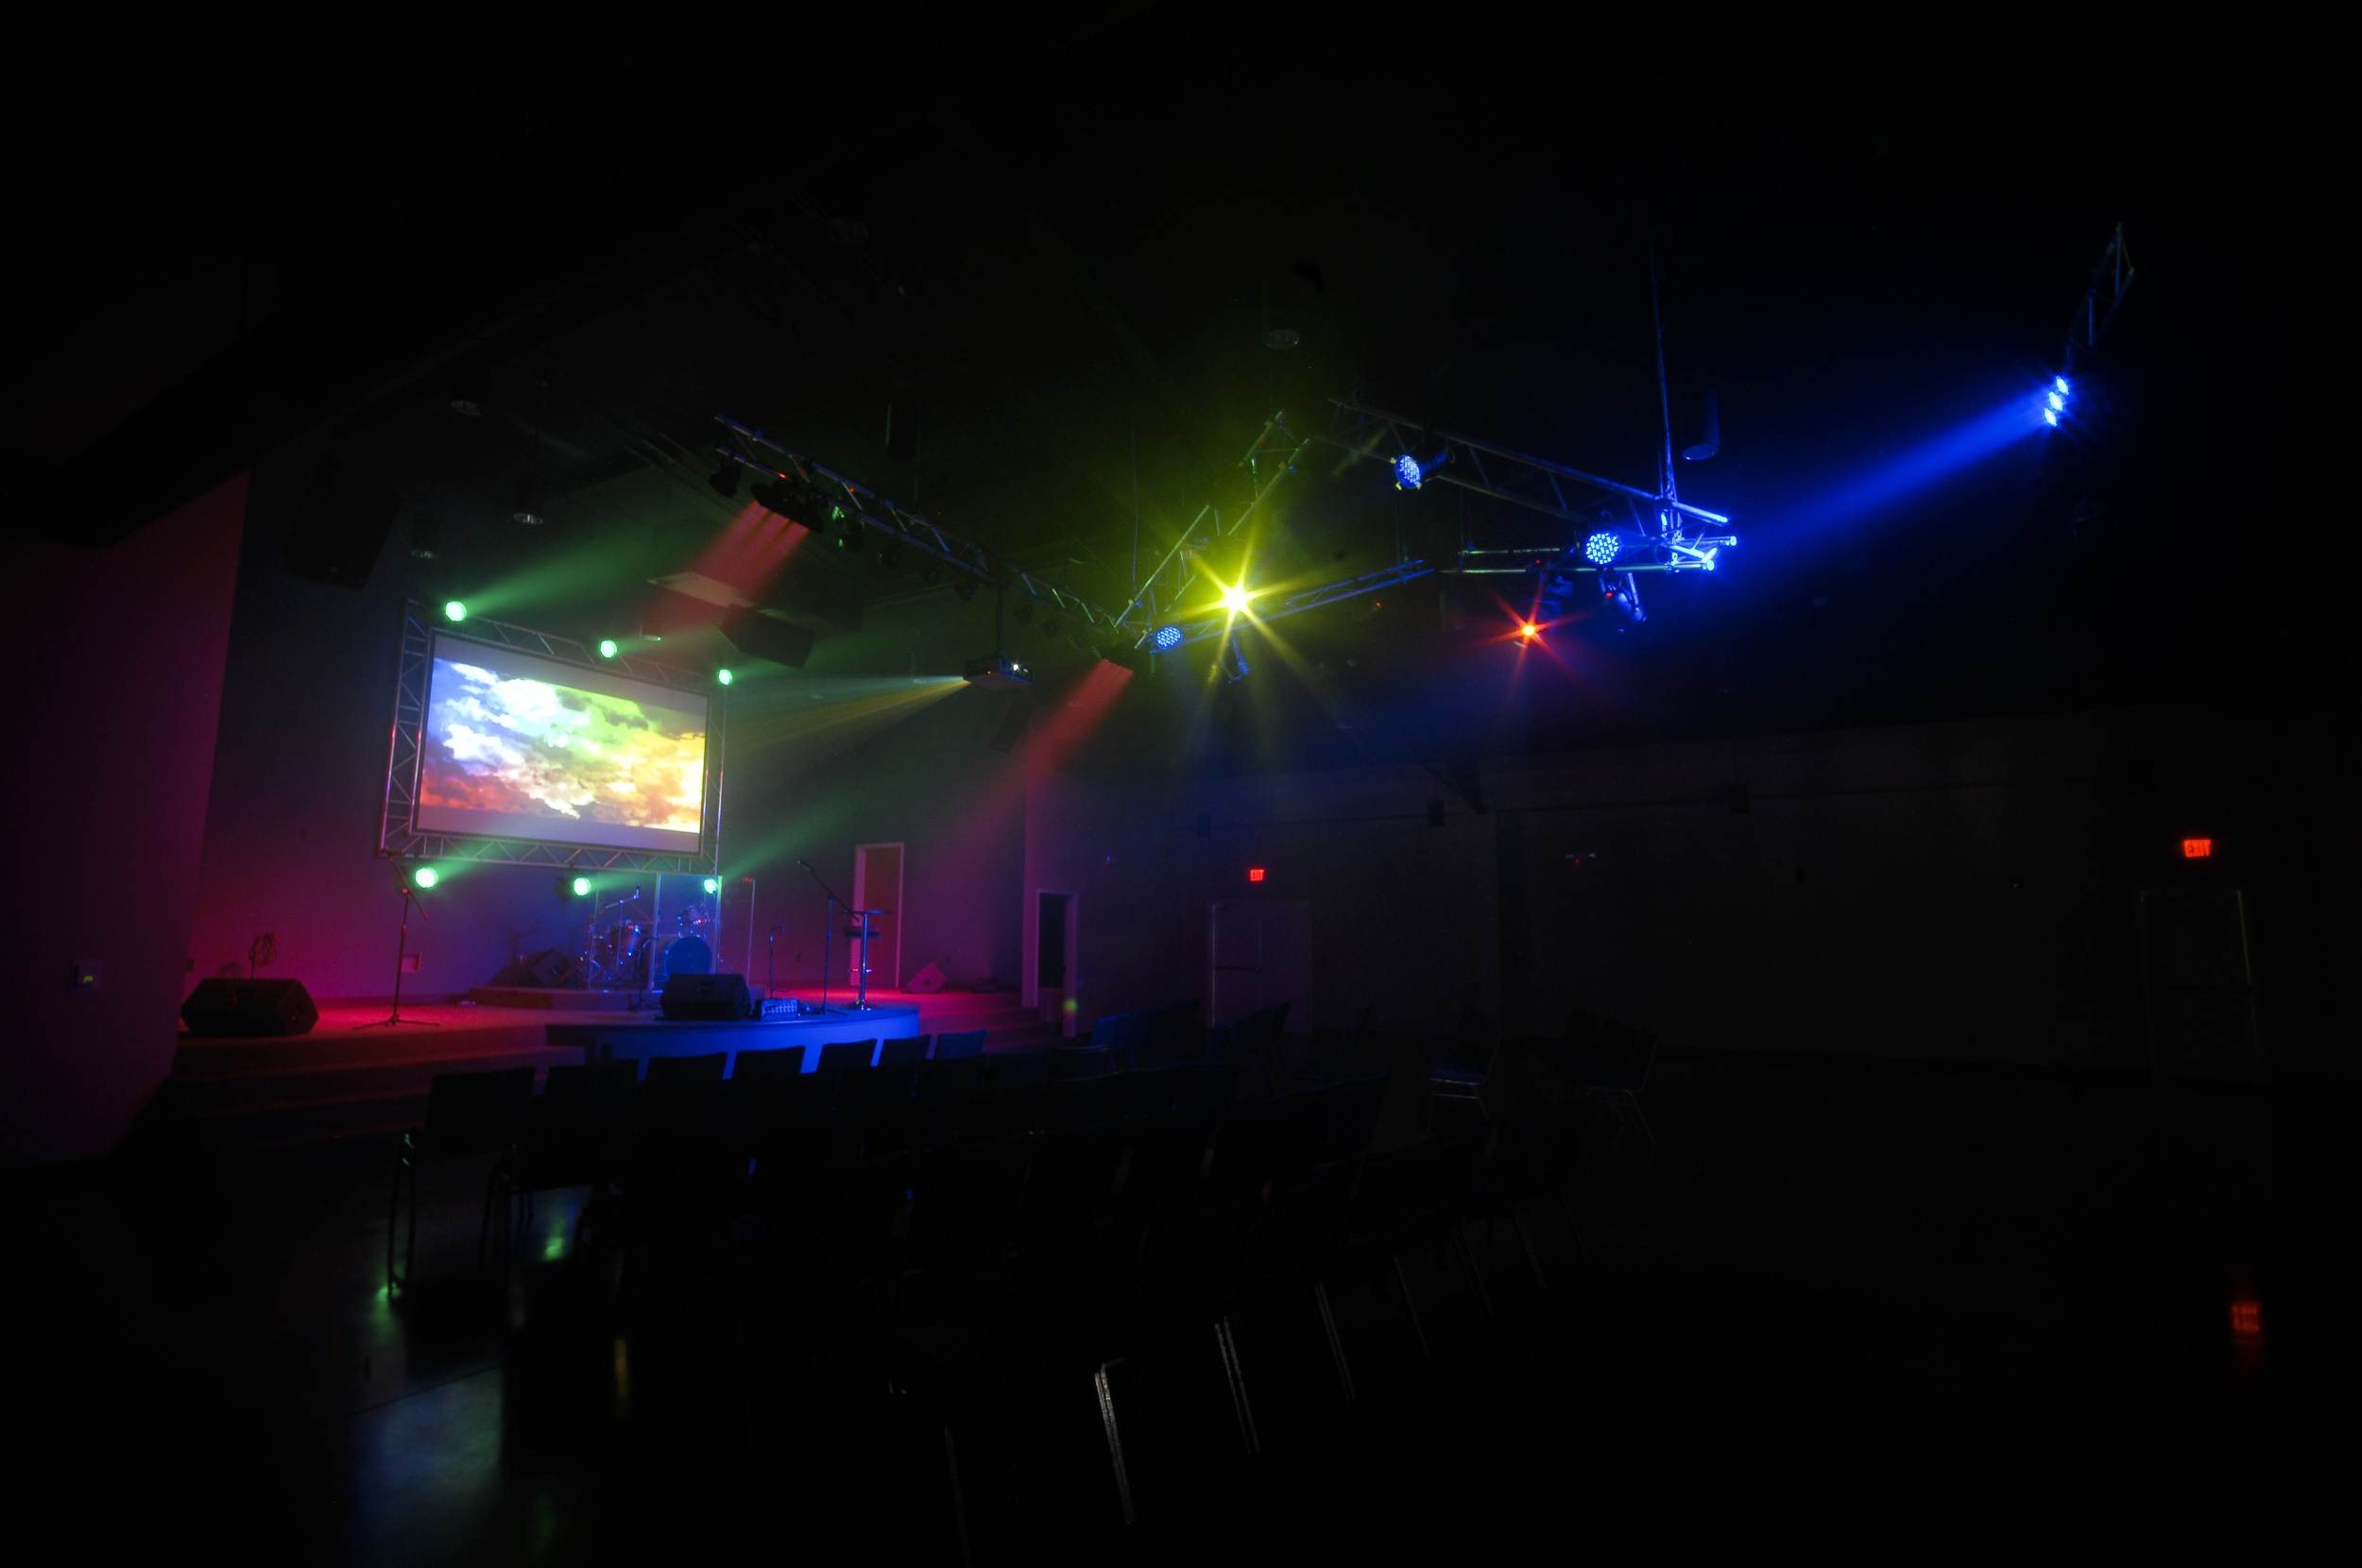 Wynndale_church_lighting_design.jpg